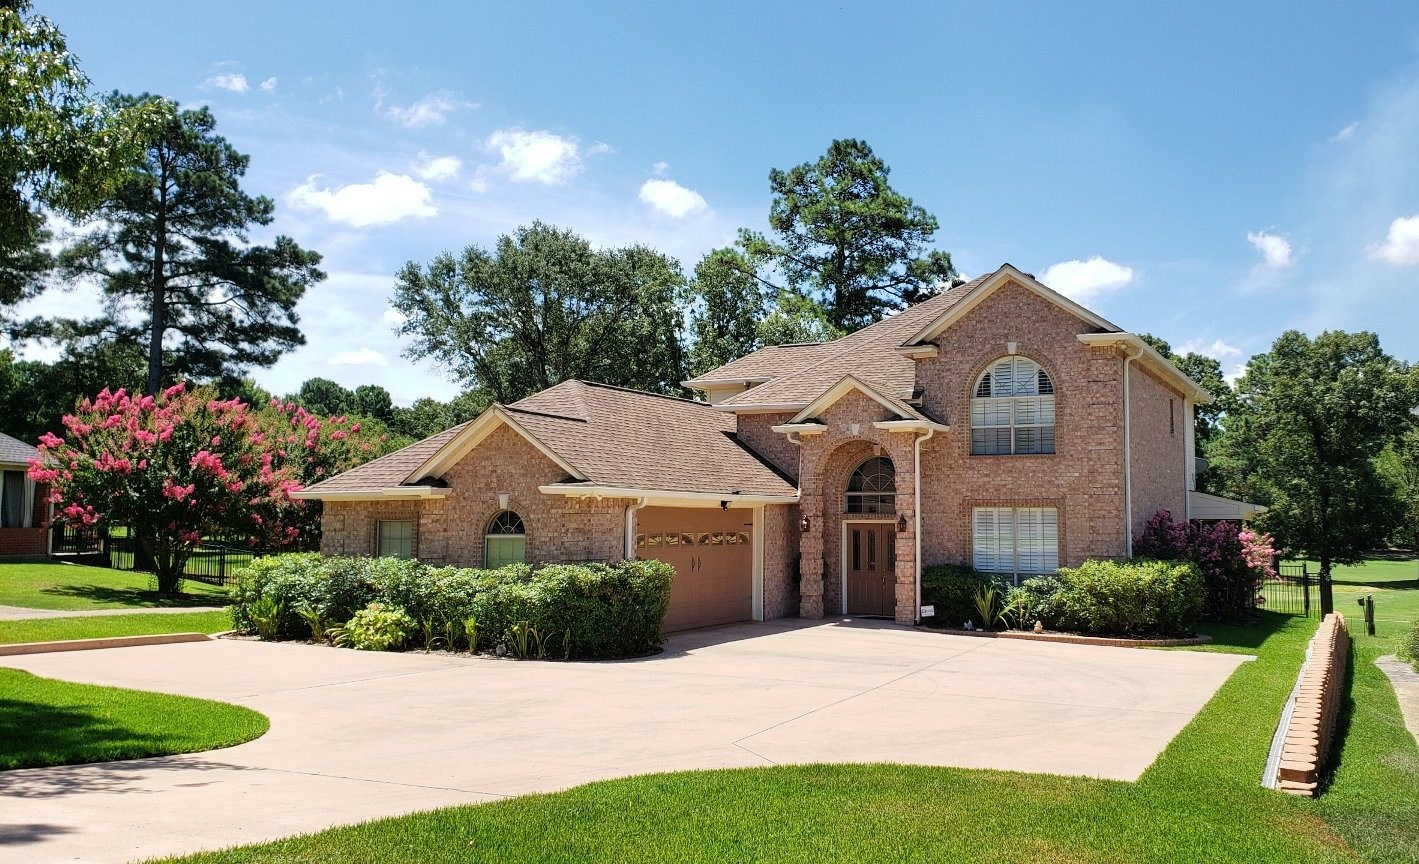 IMMACULATE HOME IN GOLF COURSE SUBDIVISION IN EAST TEXAS